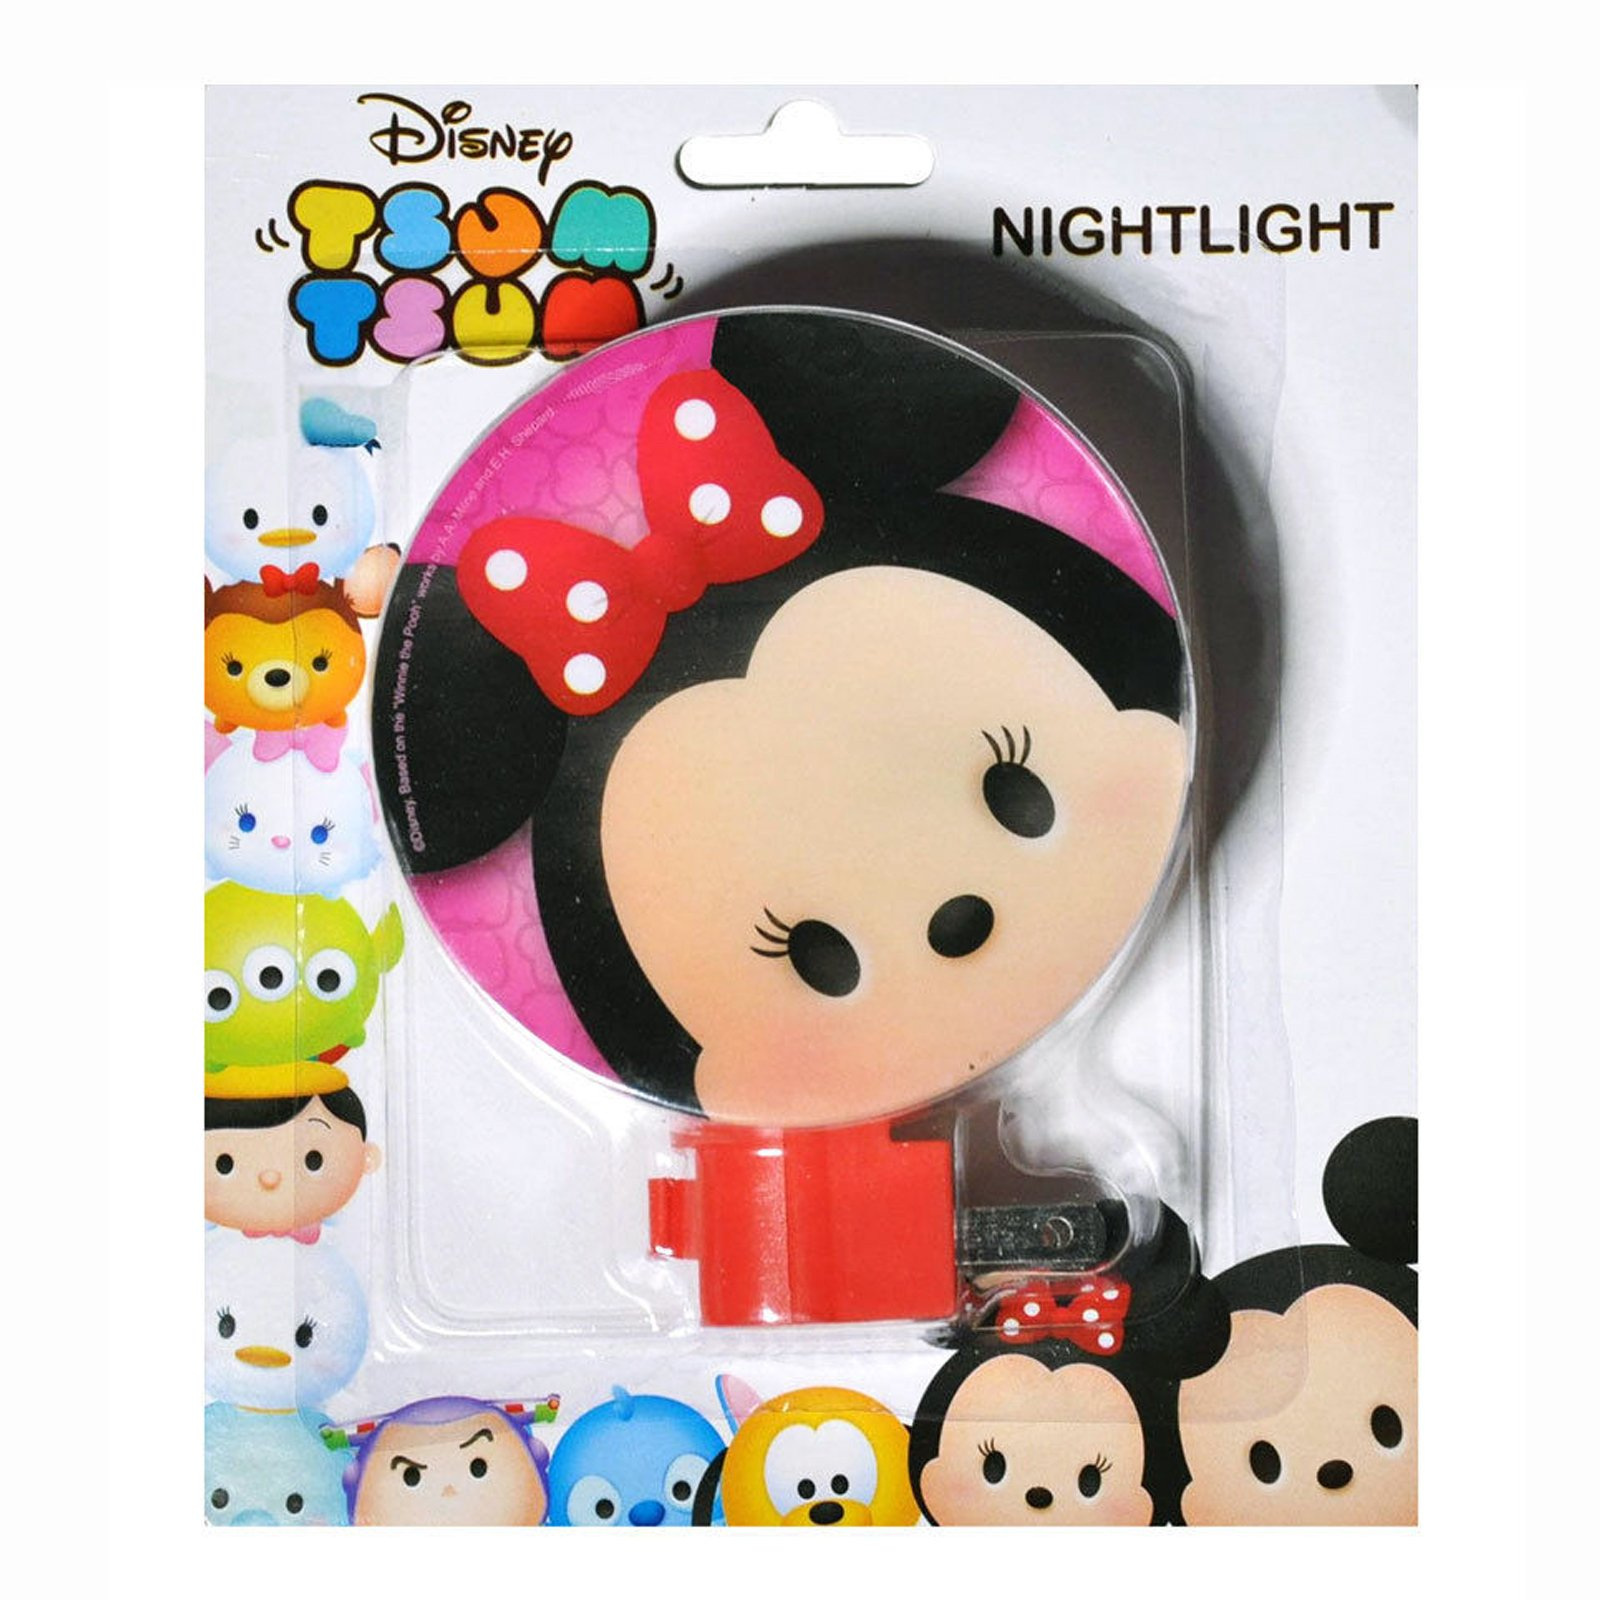 Disney Tsum Tsum Night Light Kids Bedroom Home Decor Minnie Mouse - Red